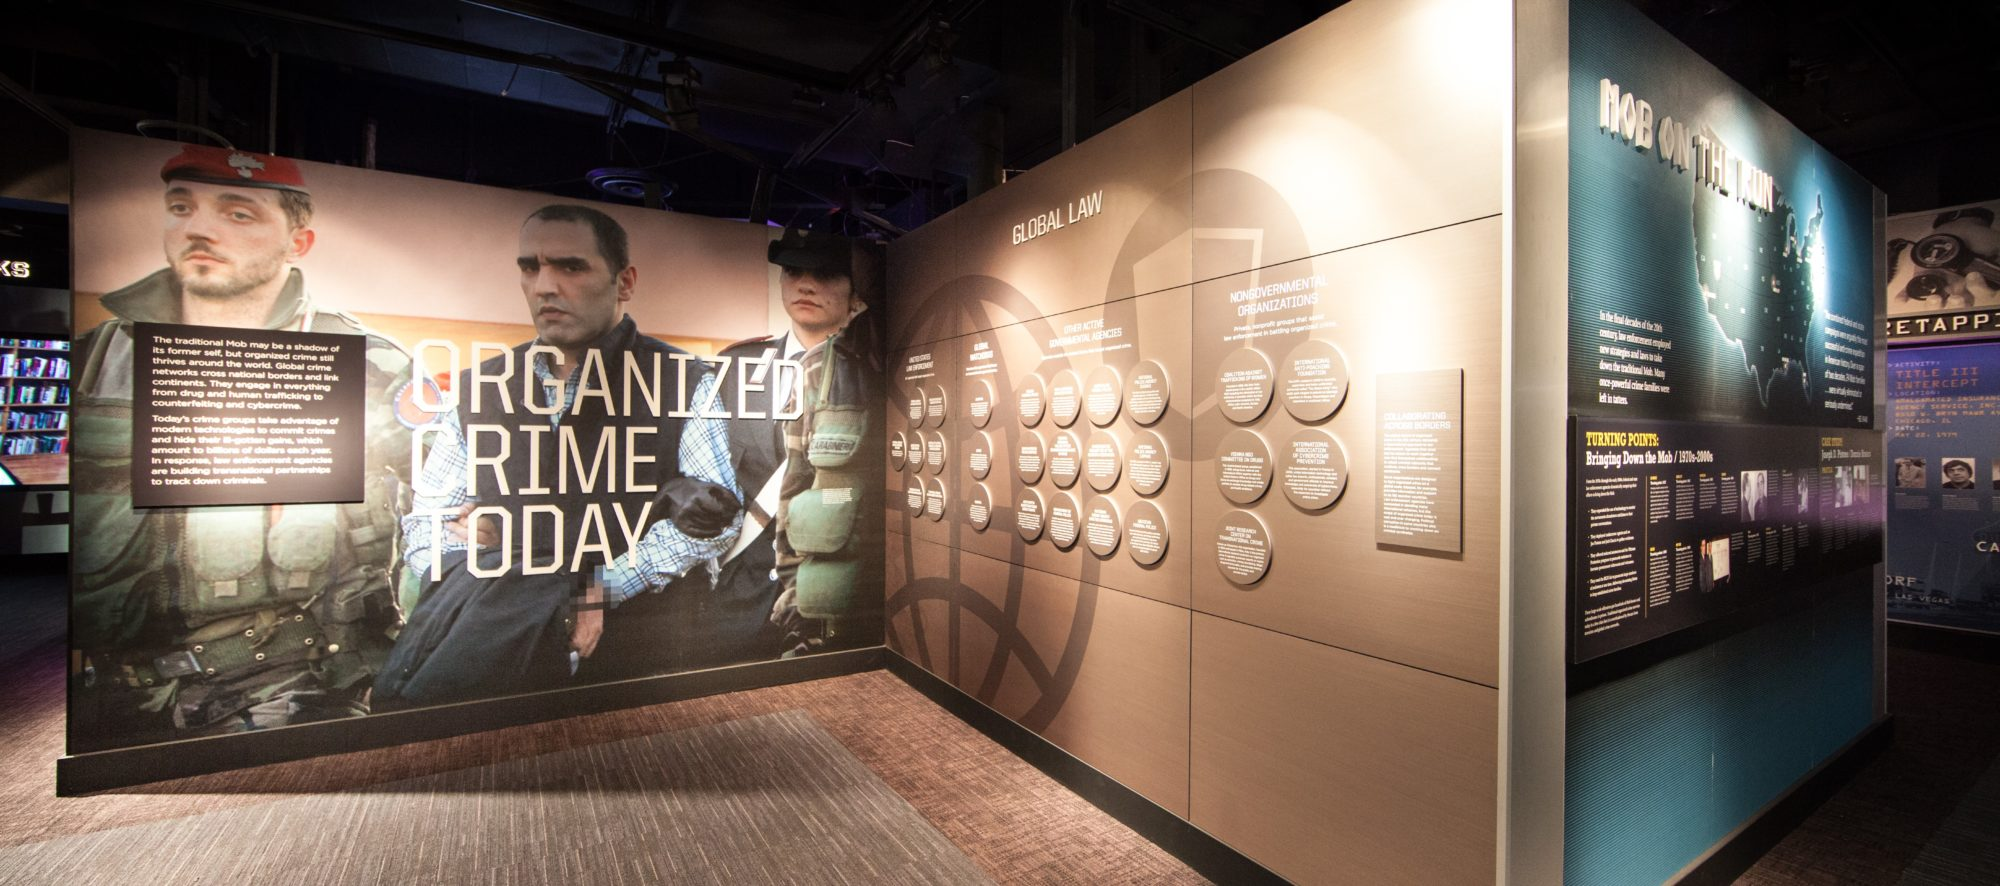 An exhibit display inside the Mob Museum, part of the renovations designed by LGA Architecture.